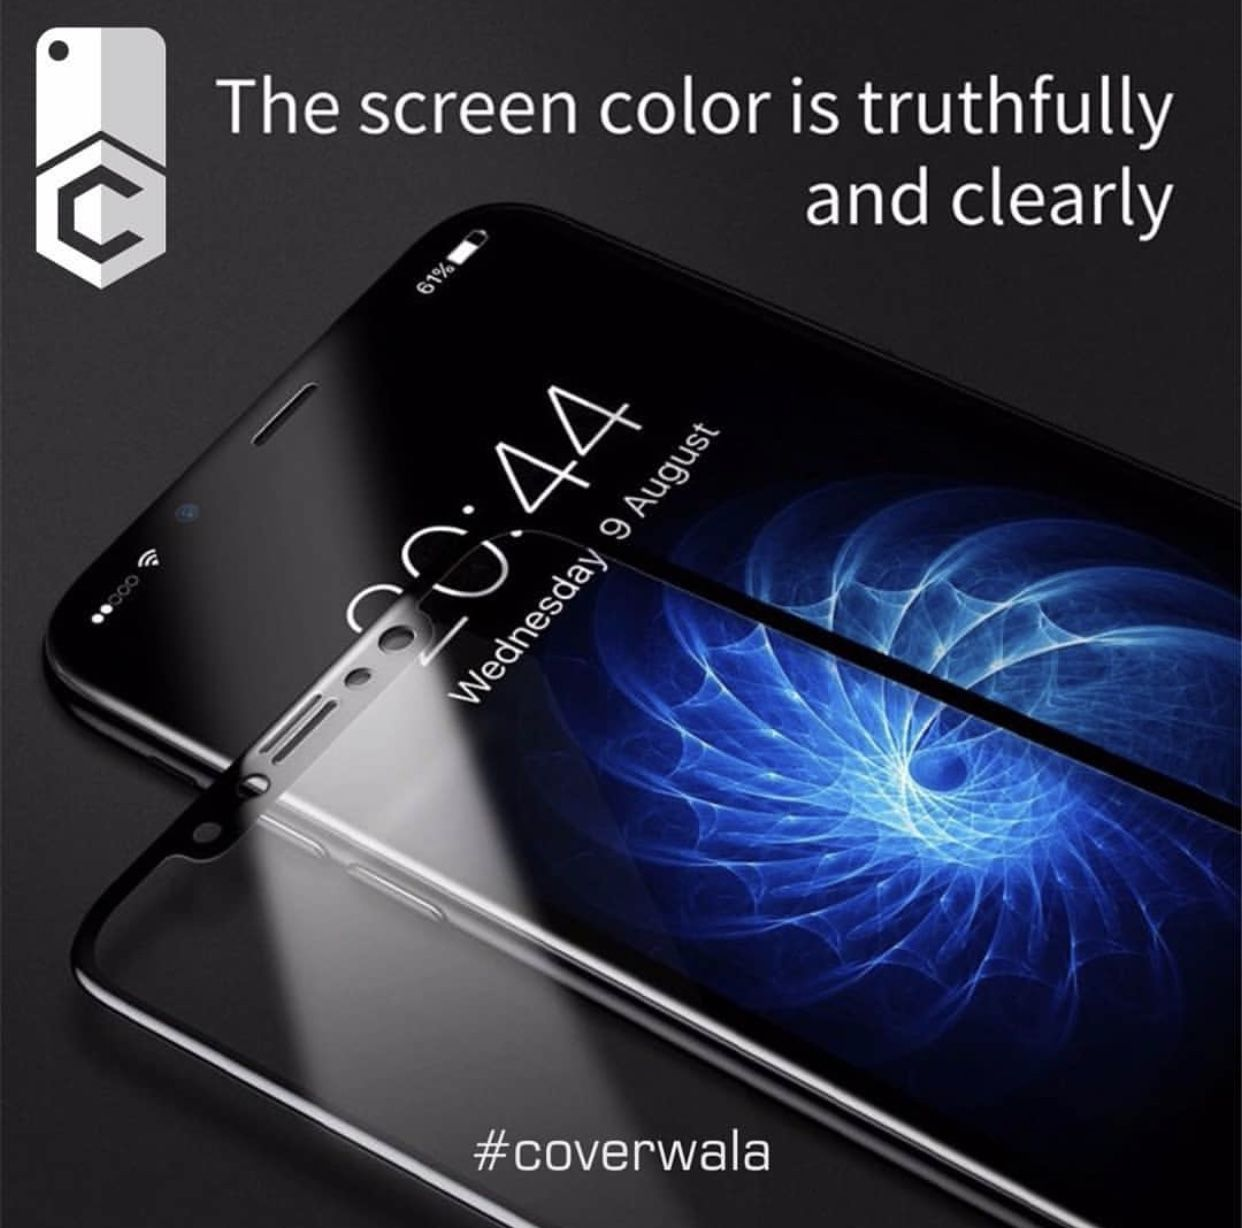 Pin By Coverwala On Tempered Glass Pinterest Iphone 6 6s Plus 3d Full Cover Clear 4d Premium Glasses Eyeglasses Eye